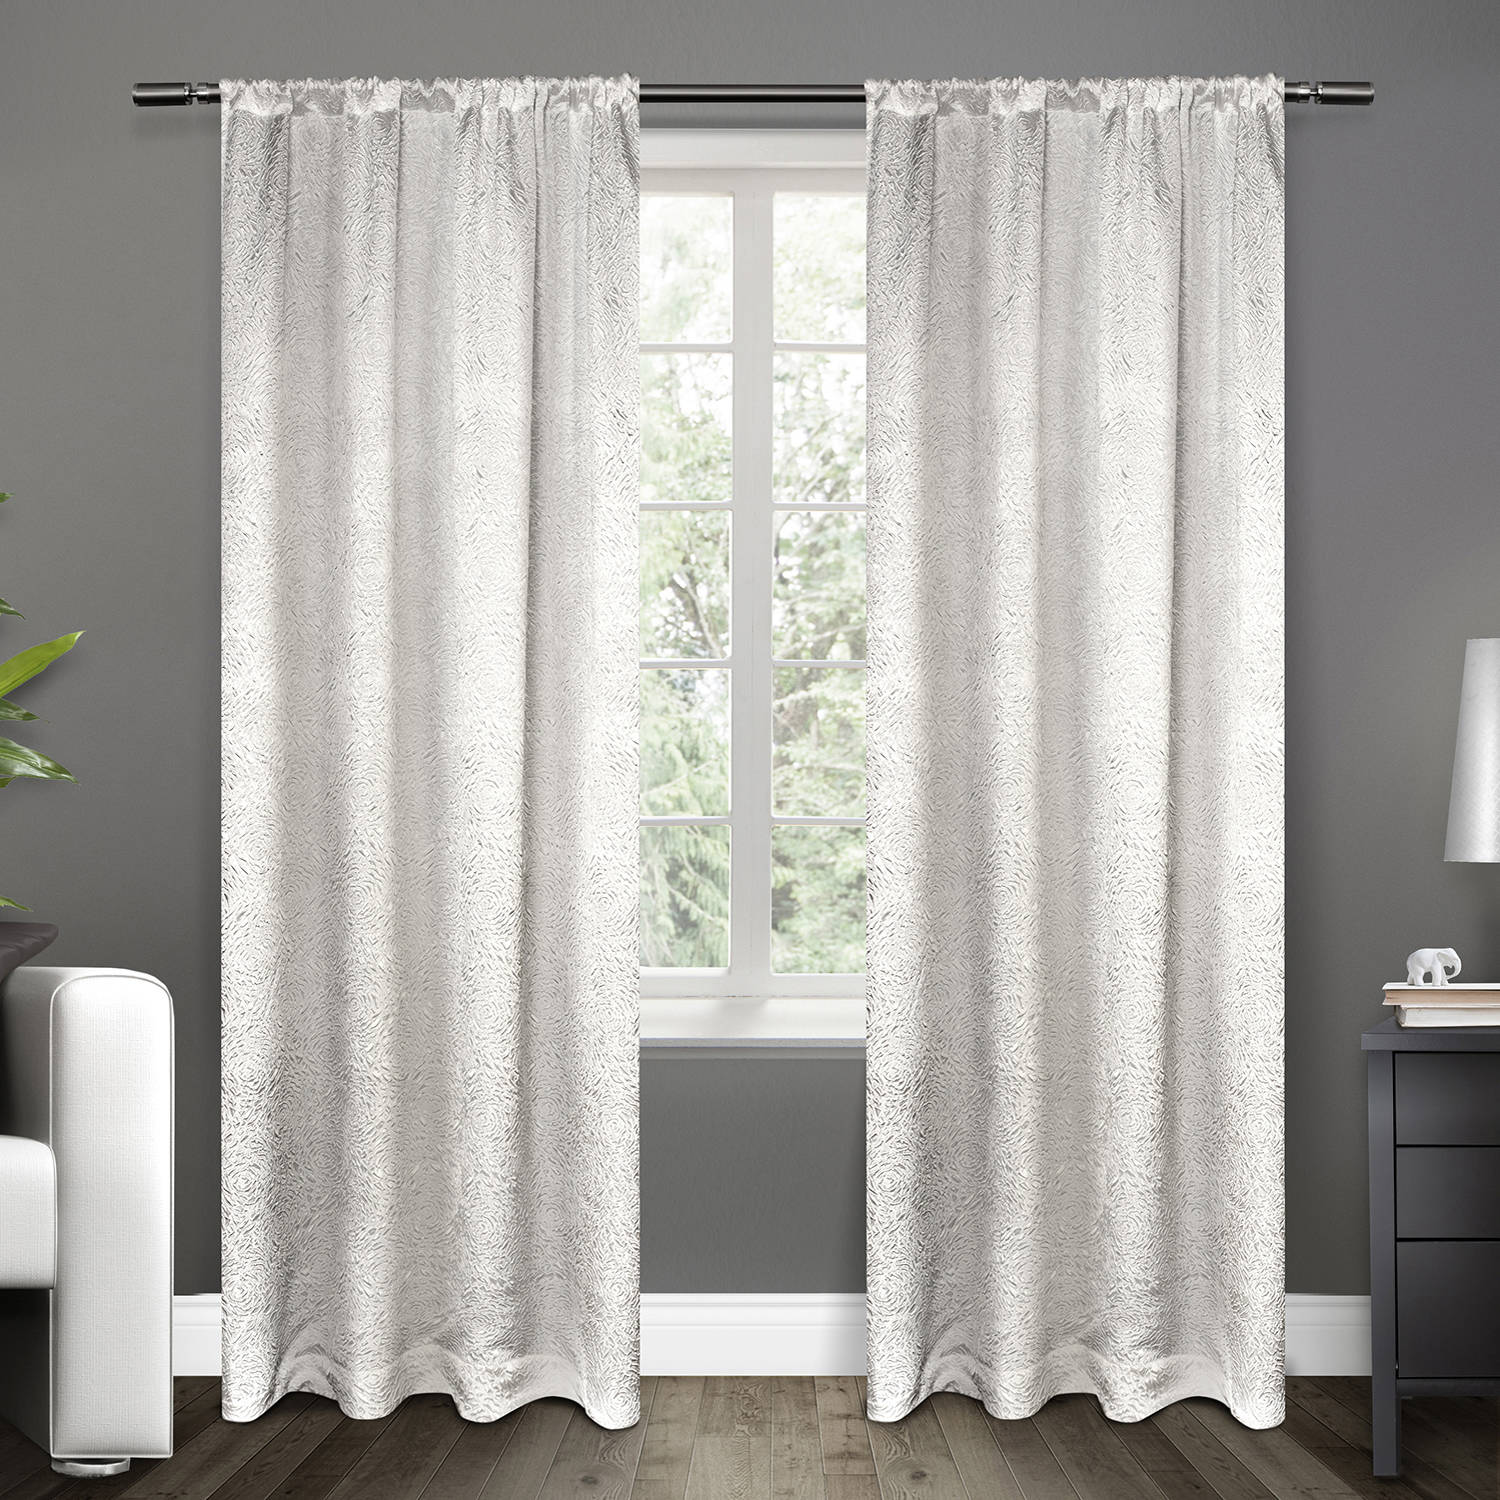 Exclusive Home Embossed Satin Window Curtain Panel Pair With Rod Pocket